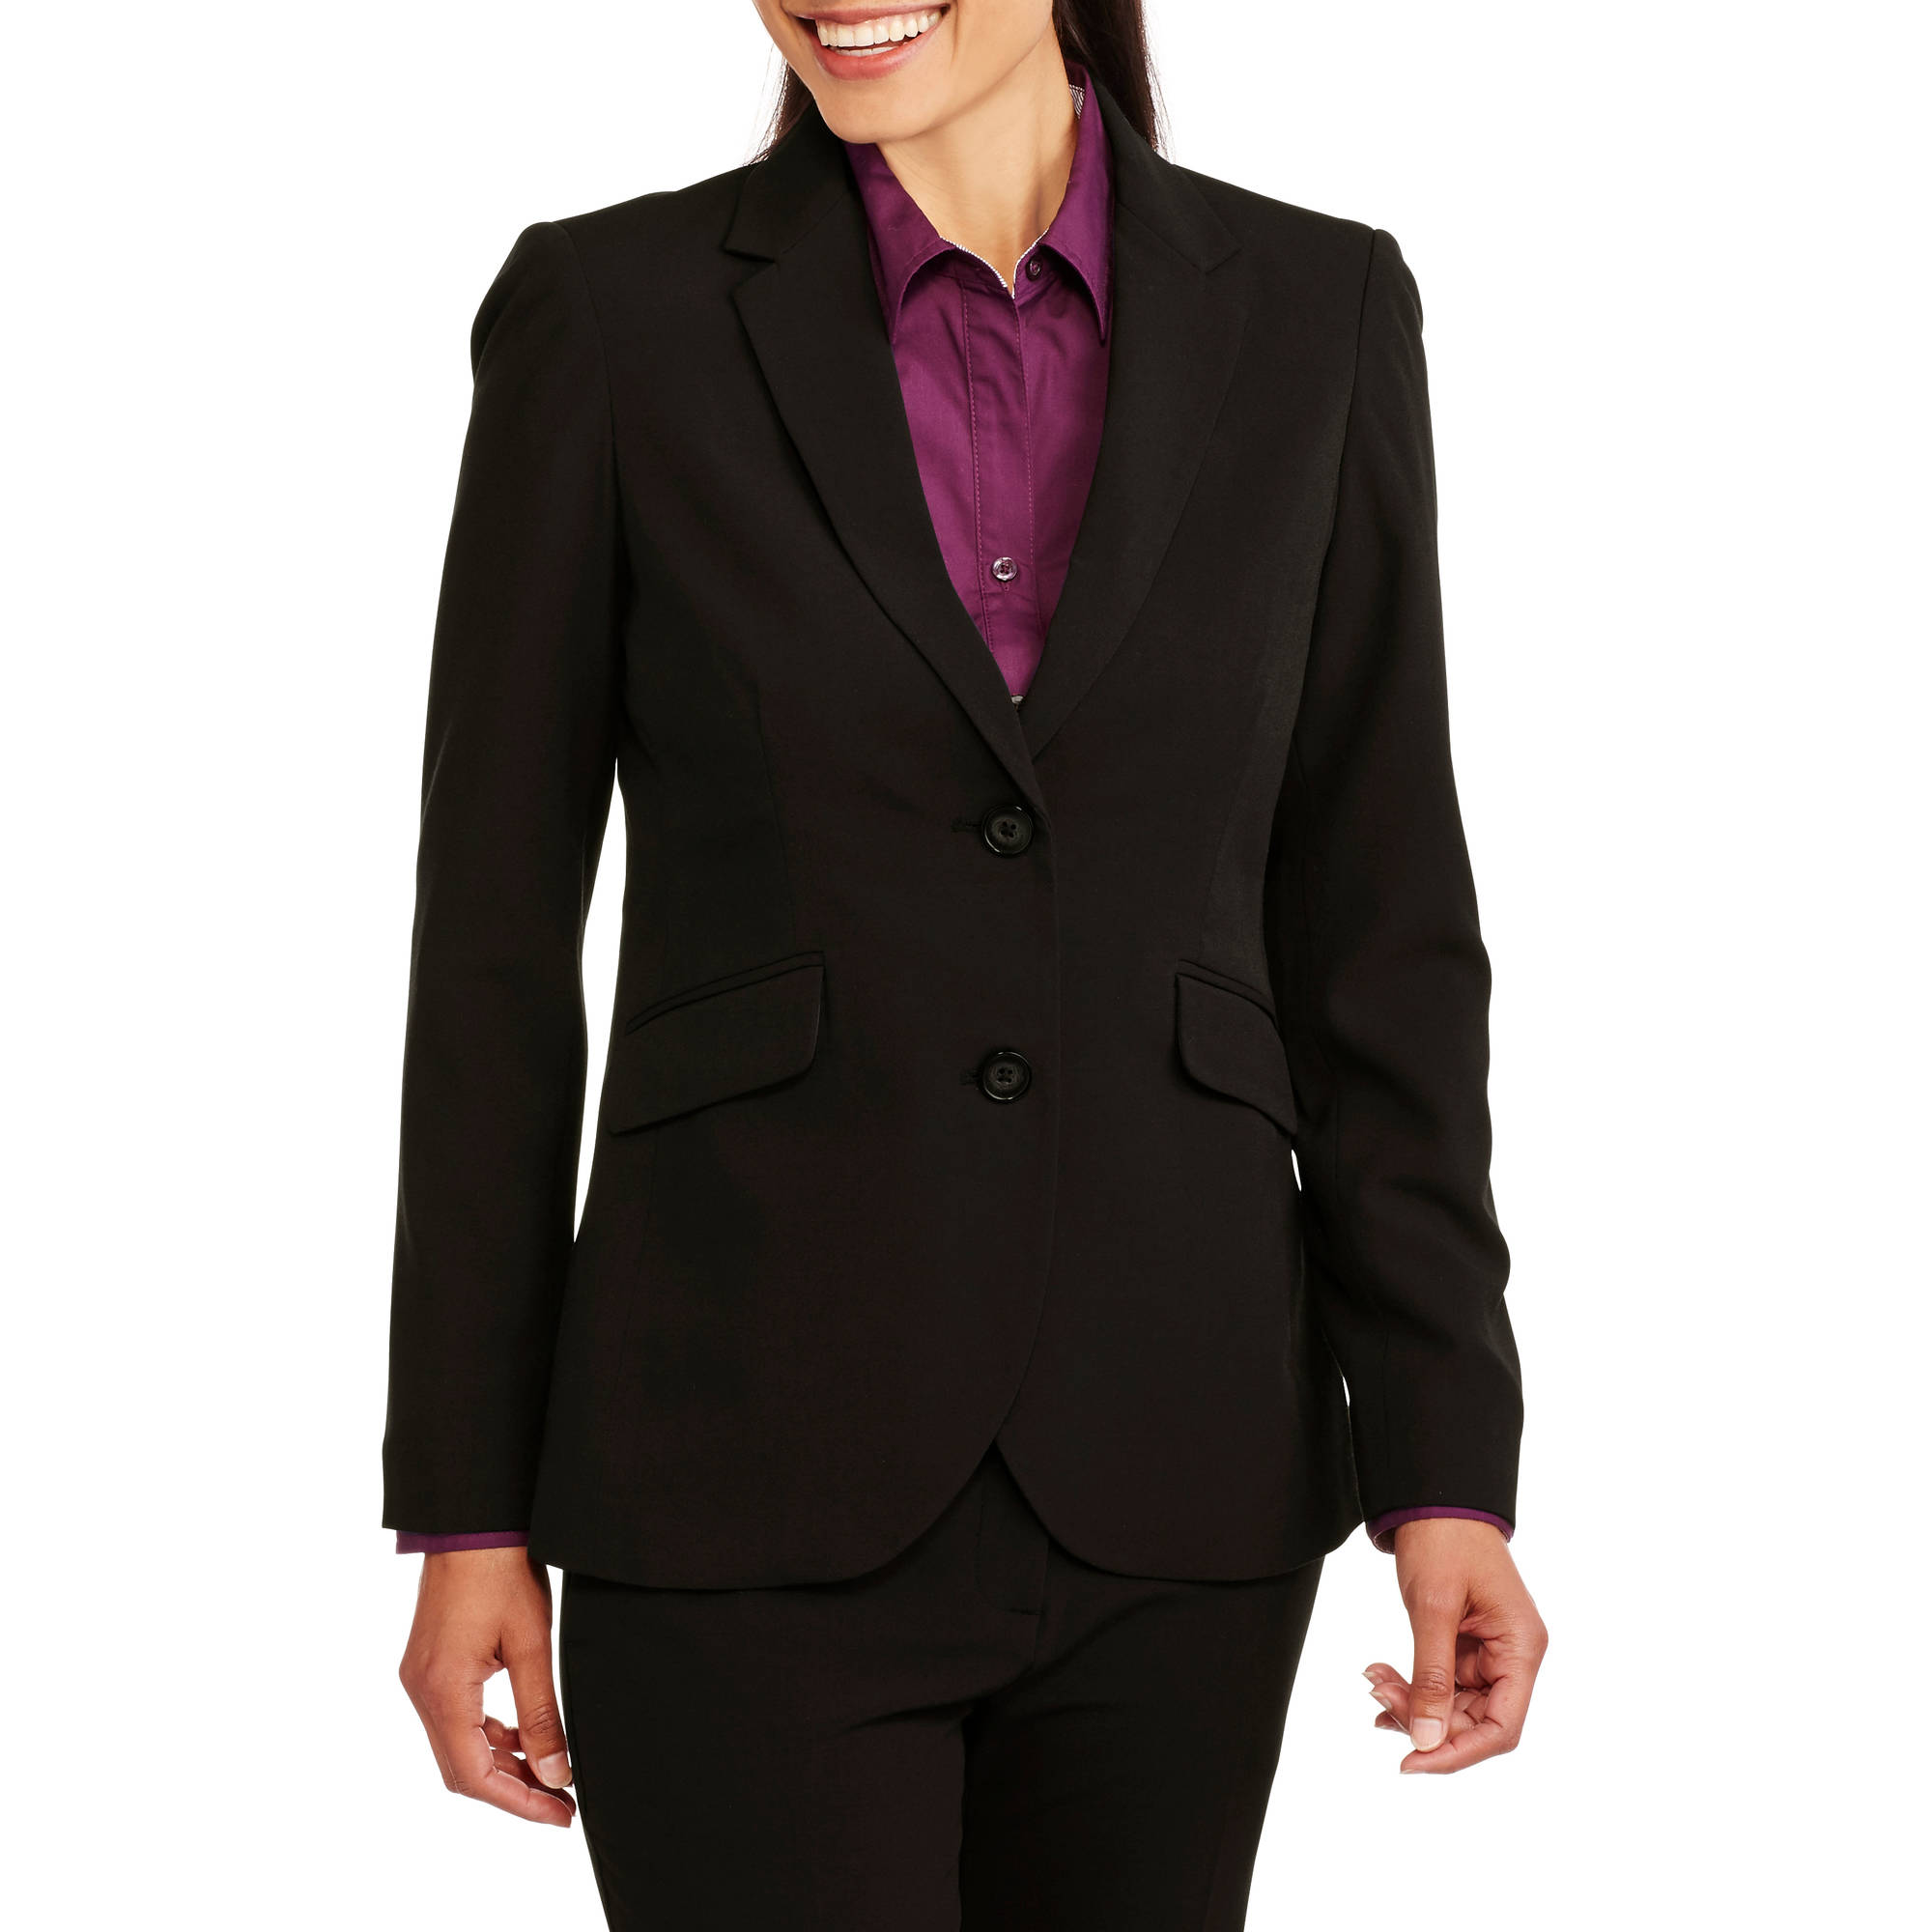 Women's Career Suit Jacket, New Updated Fit